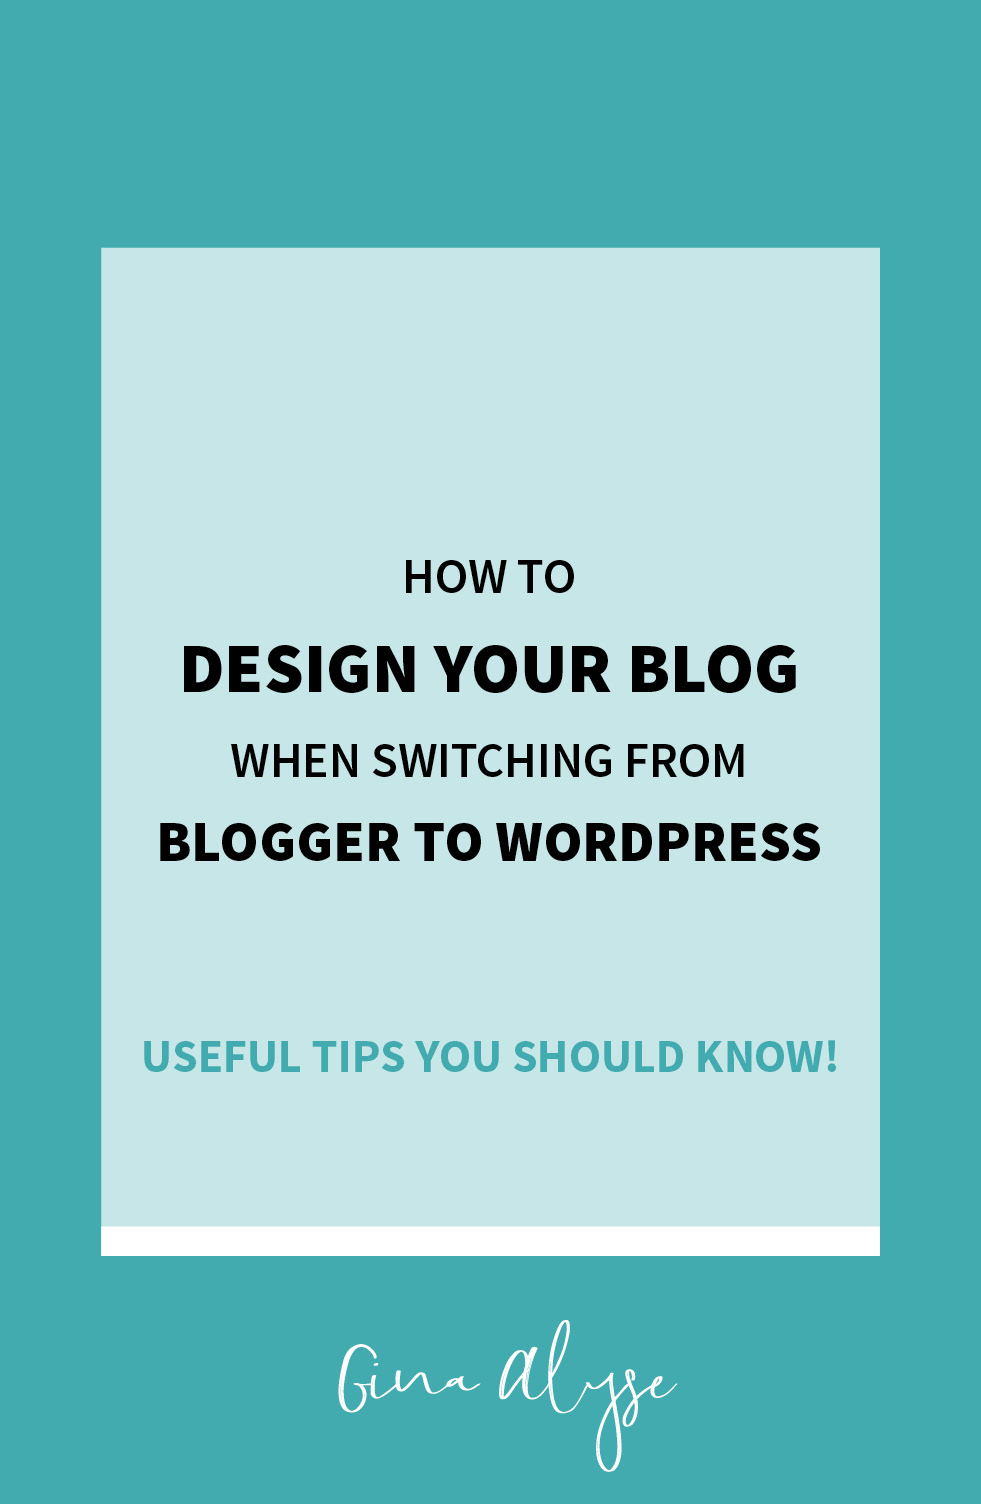 How to Design Your Blog - Switching from Blogger to WordPress